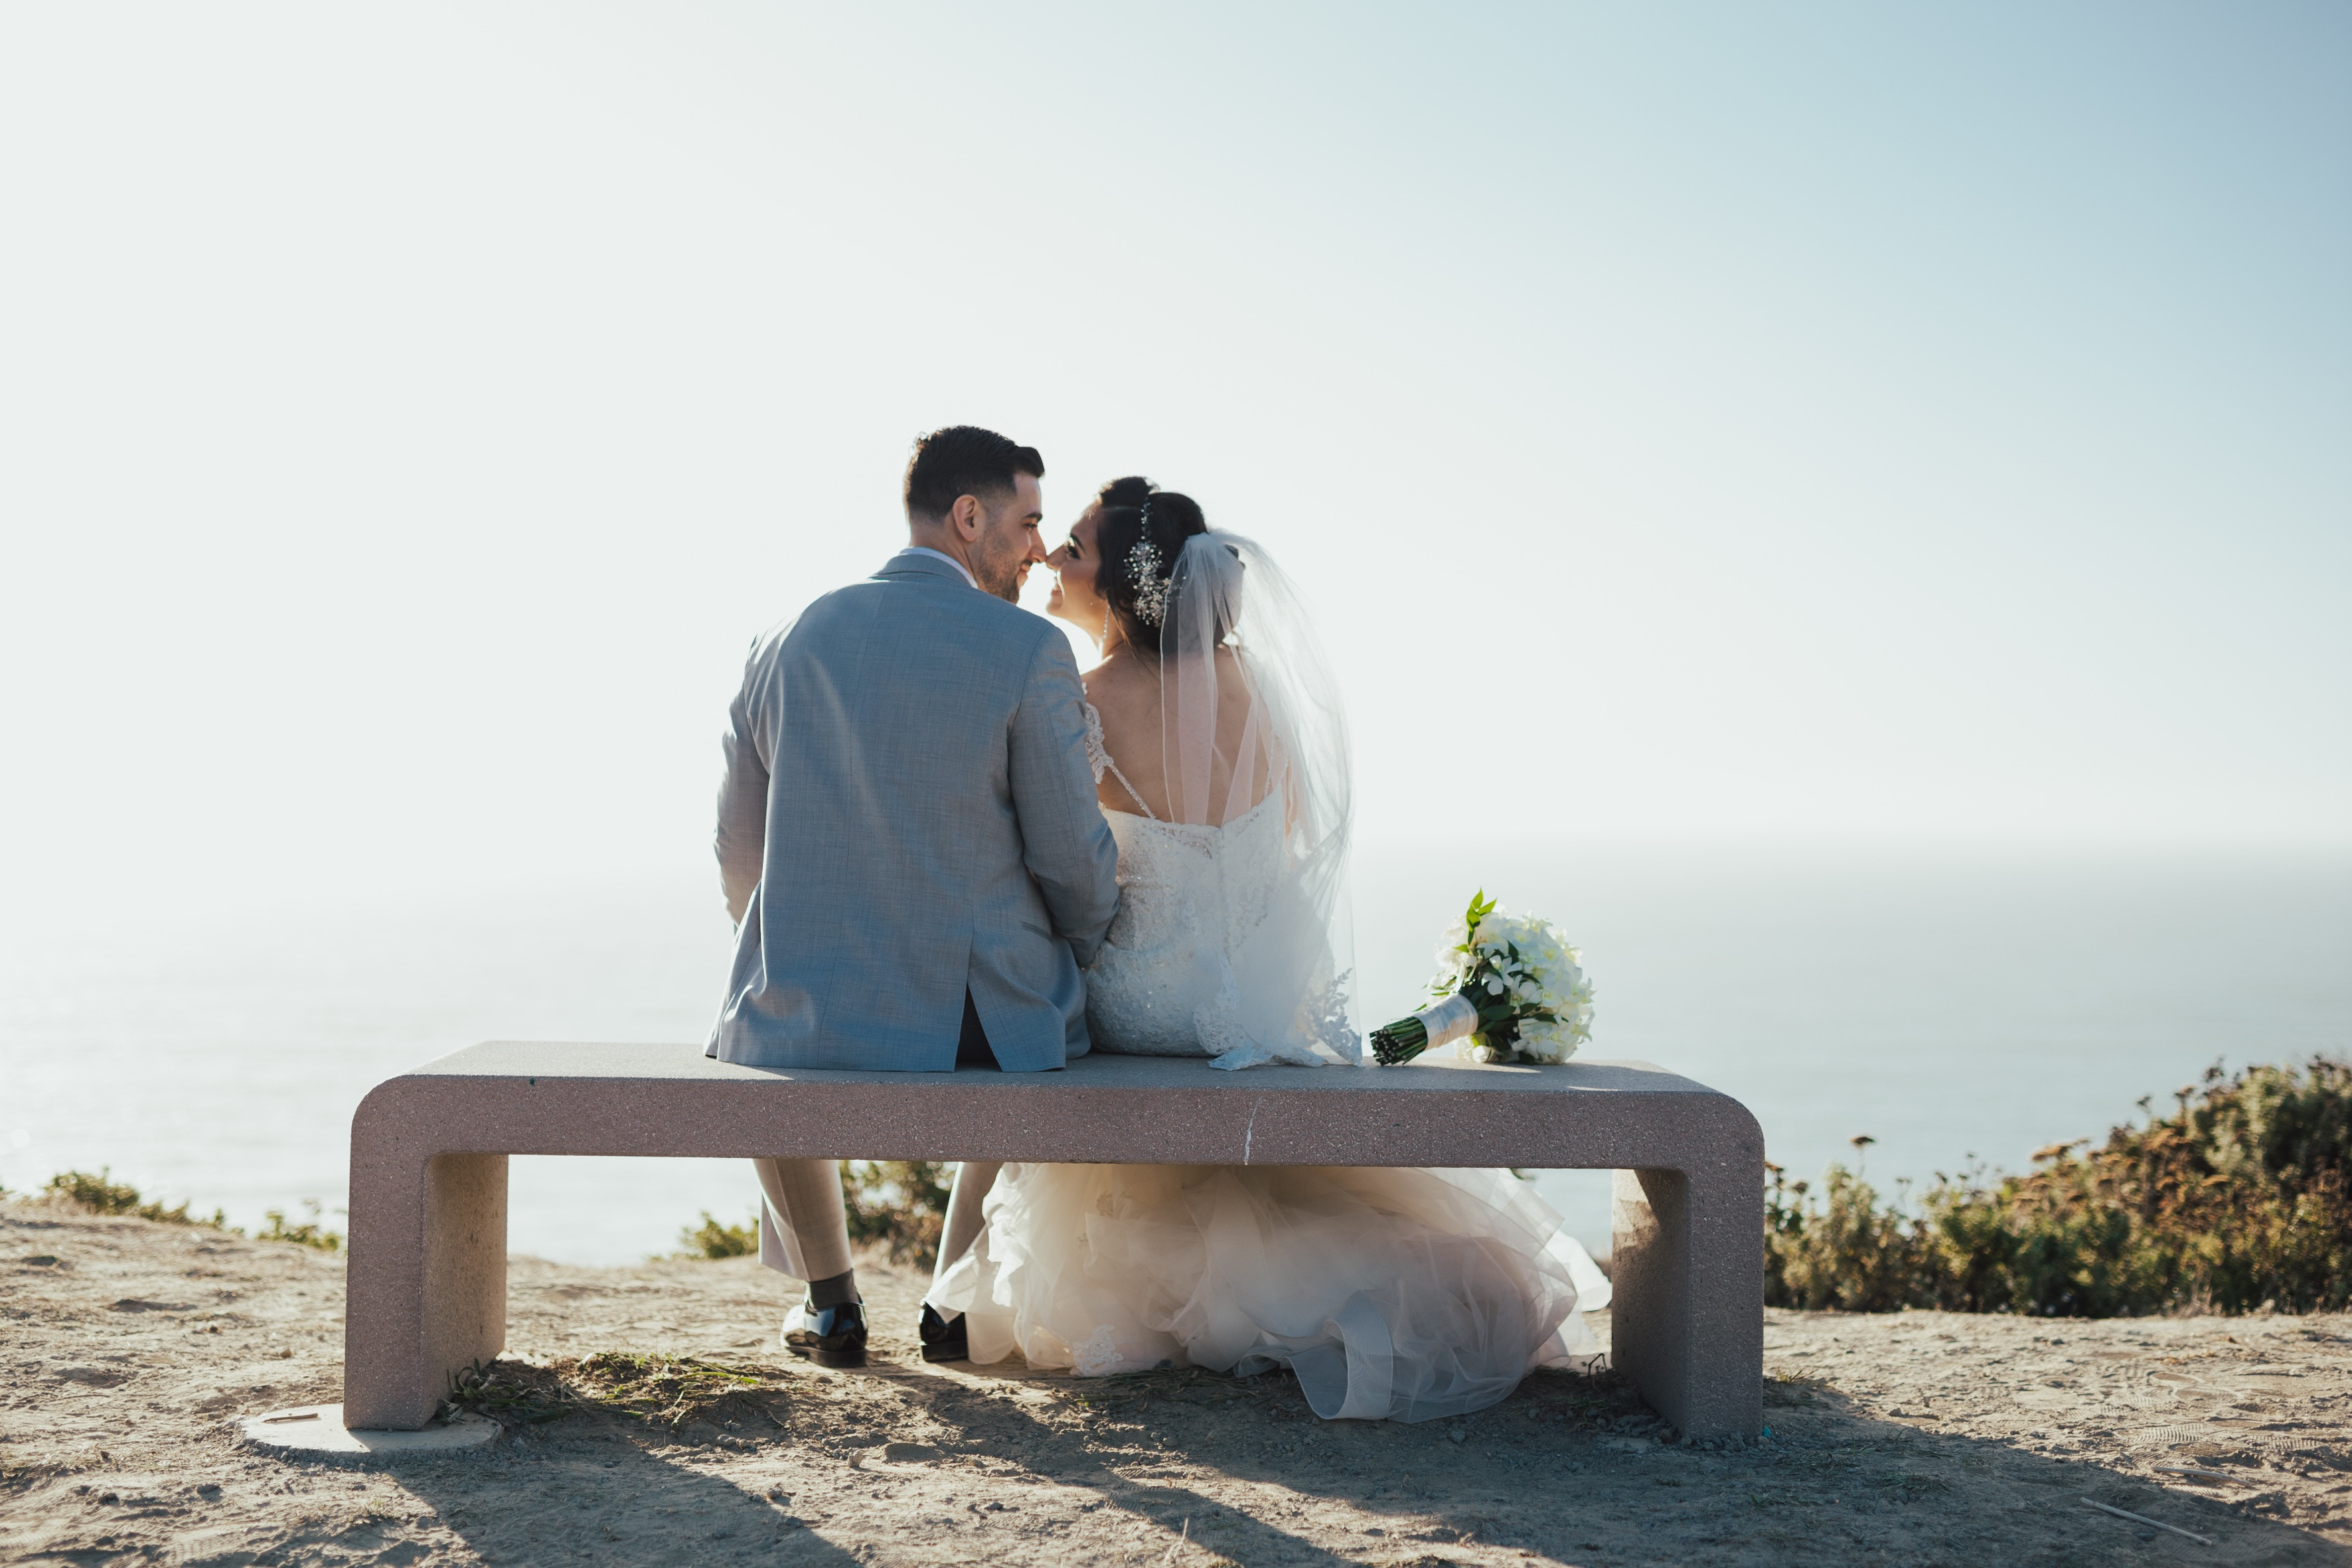 Wedding - San Francisco Airport Marriott | Wedding Photography and Wedding Videography